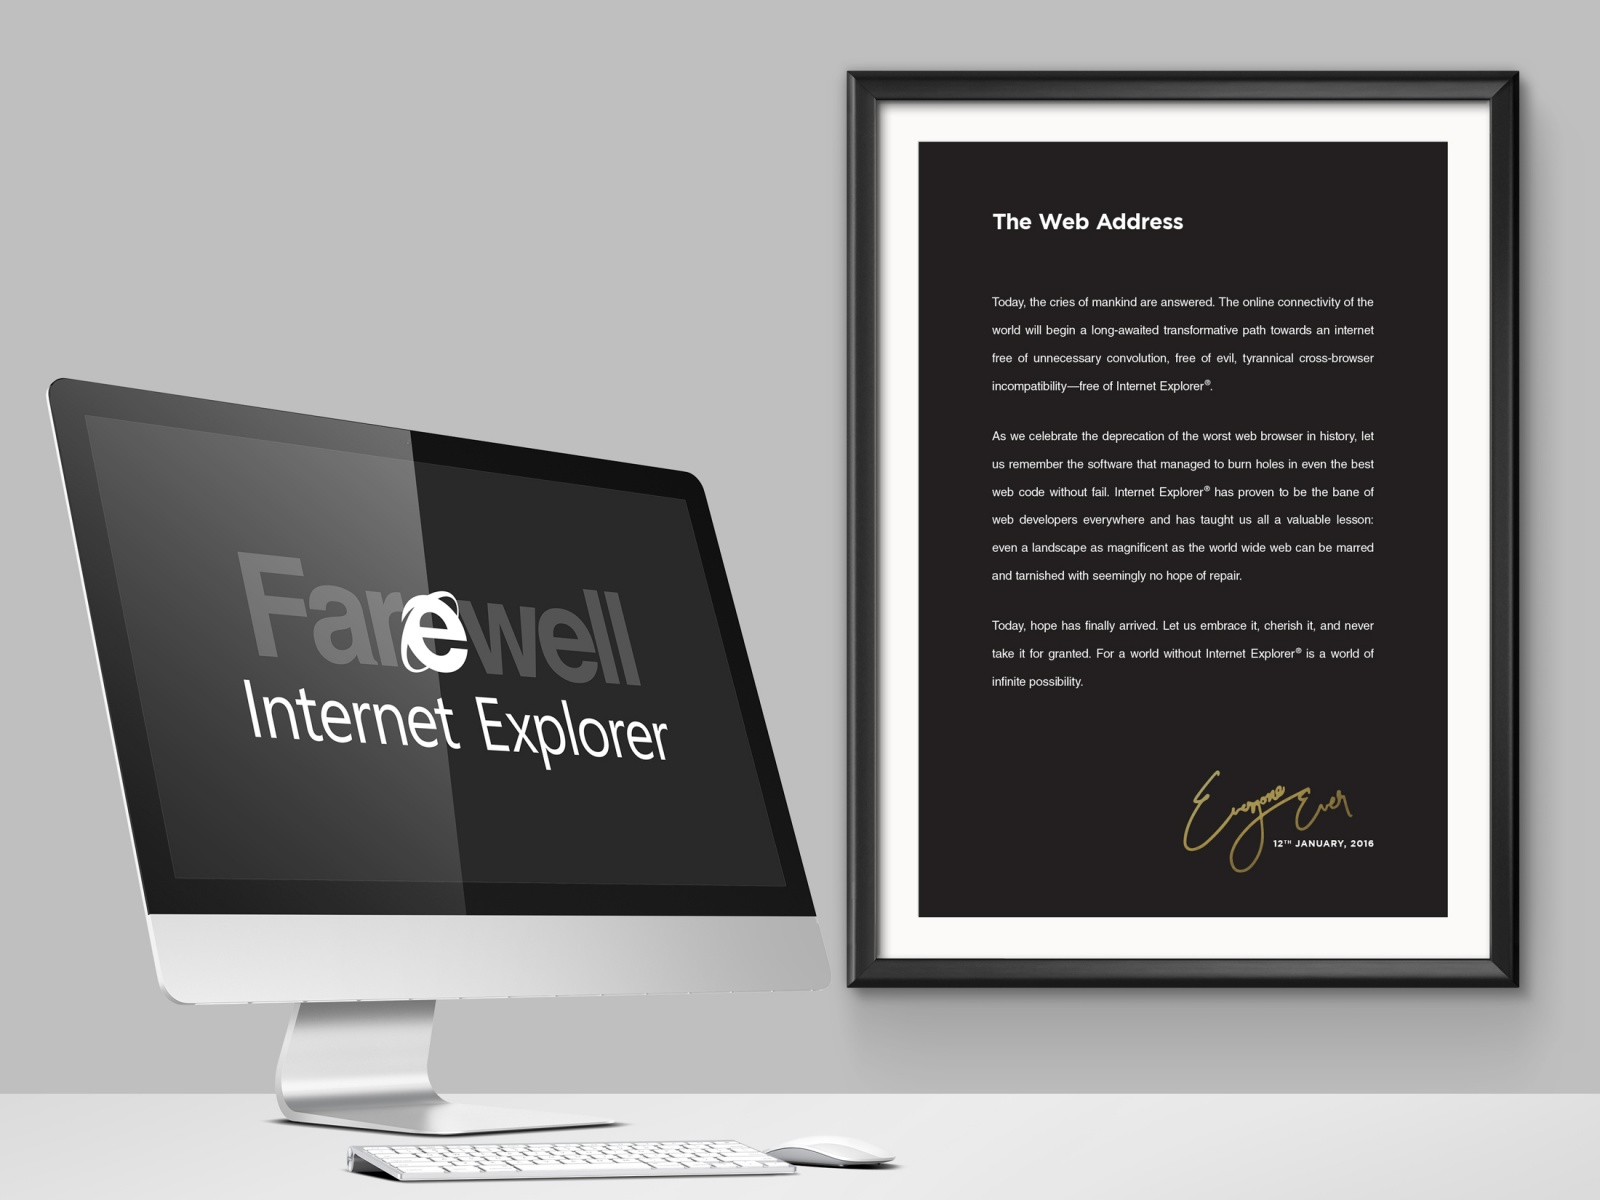 classy-poster-captures-how-little-well-miss-internet-explorer-image-cultofandroidcomwp-contentuploads201601The-Web-Address-by-Everyone-Ever-Internet-Explorer-jpg